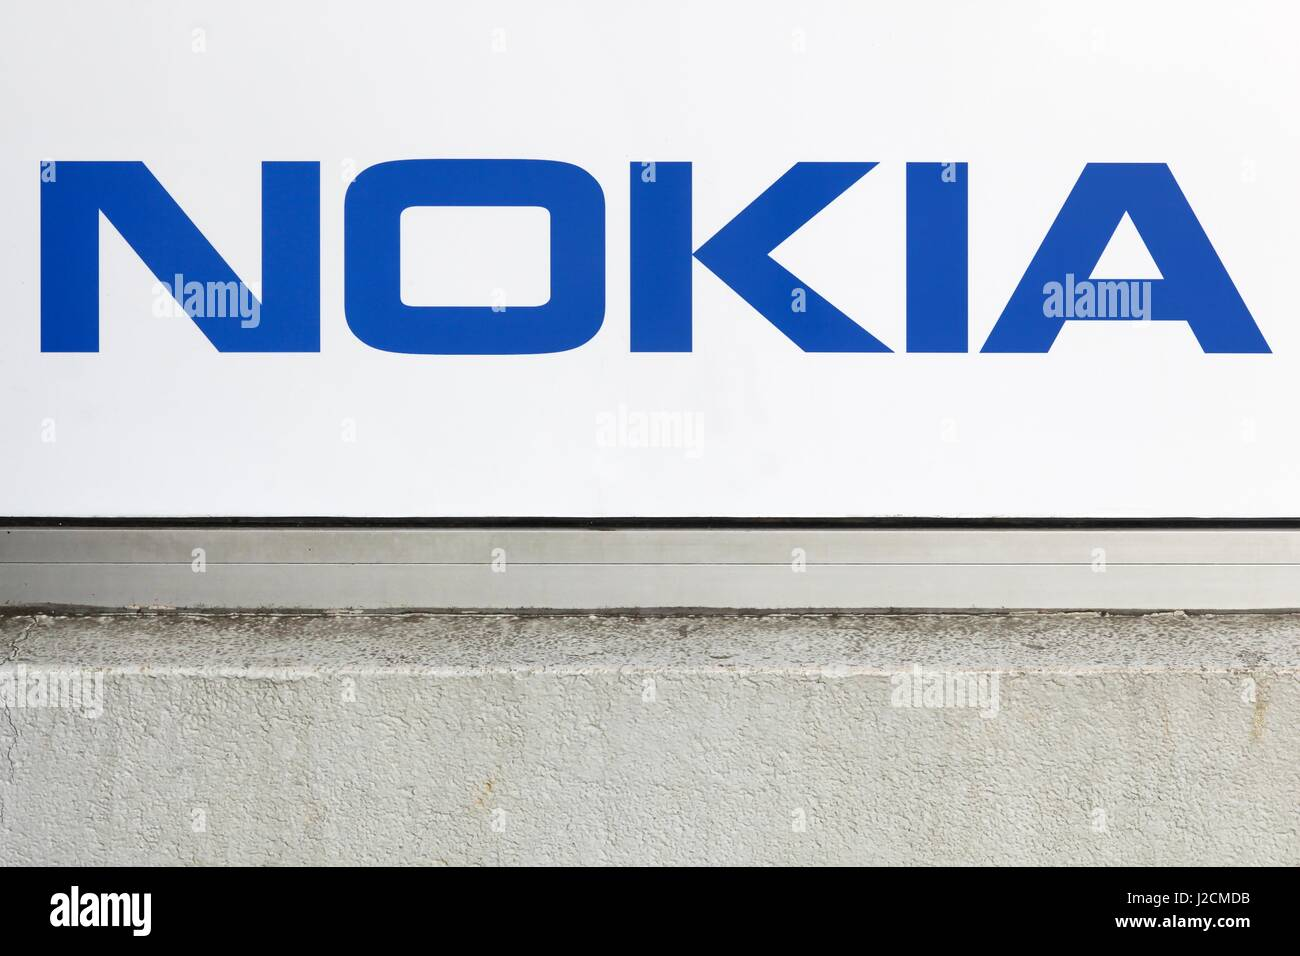 Villefranche, France - March 13, 2017: Nokia logo on a wall. Nokia is a Finnish multinational communications and Stock Photo